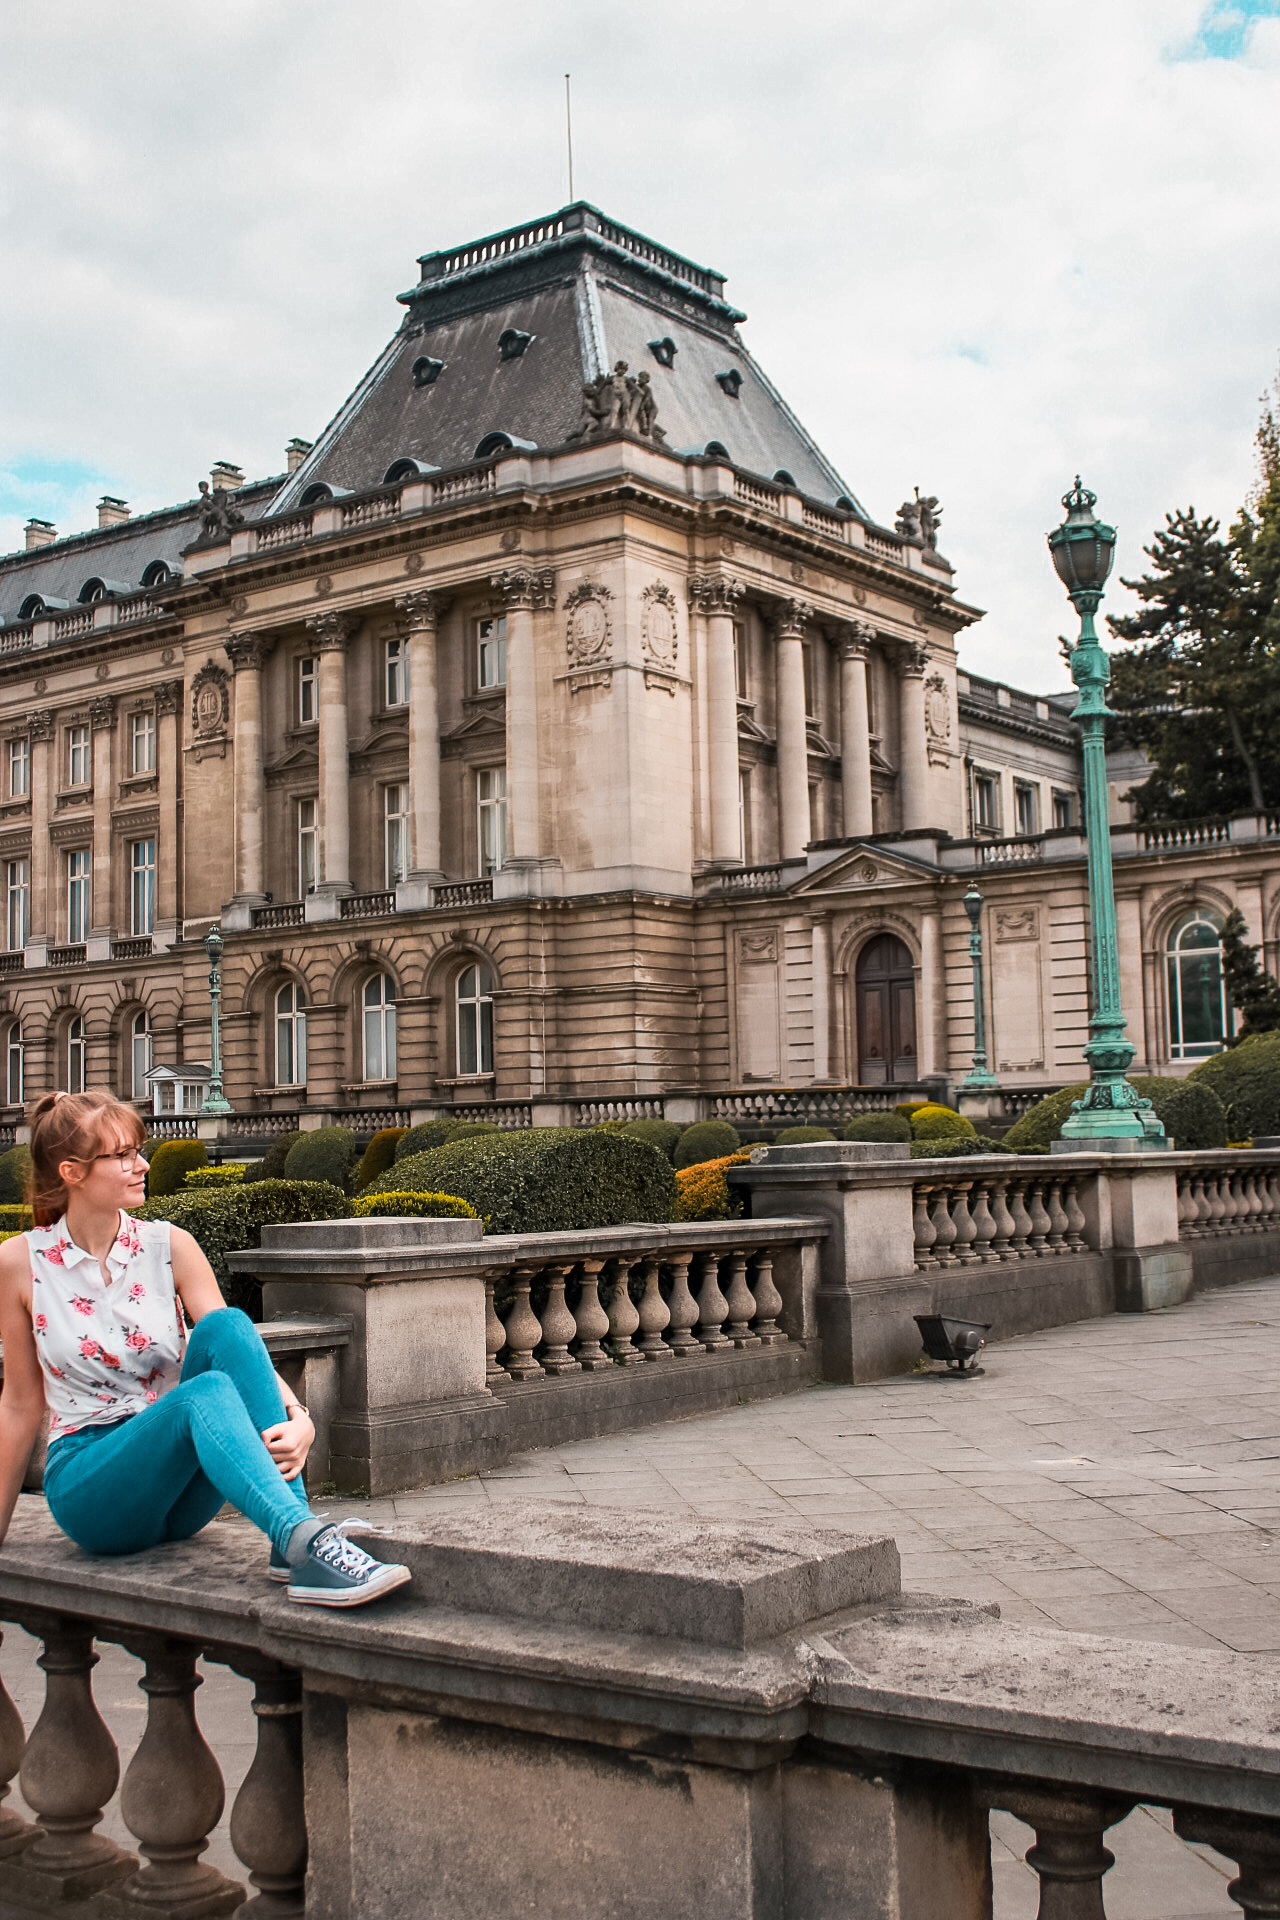 The Royal Palace of Brussels Perfect 2 day Brussels itinerary